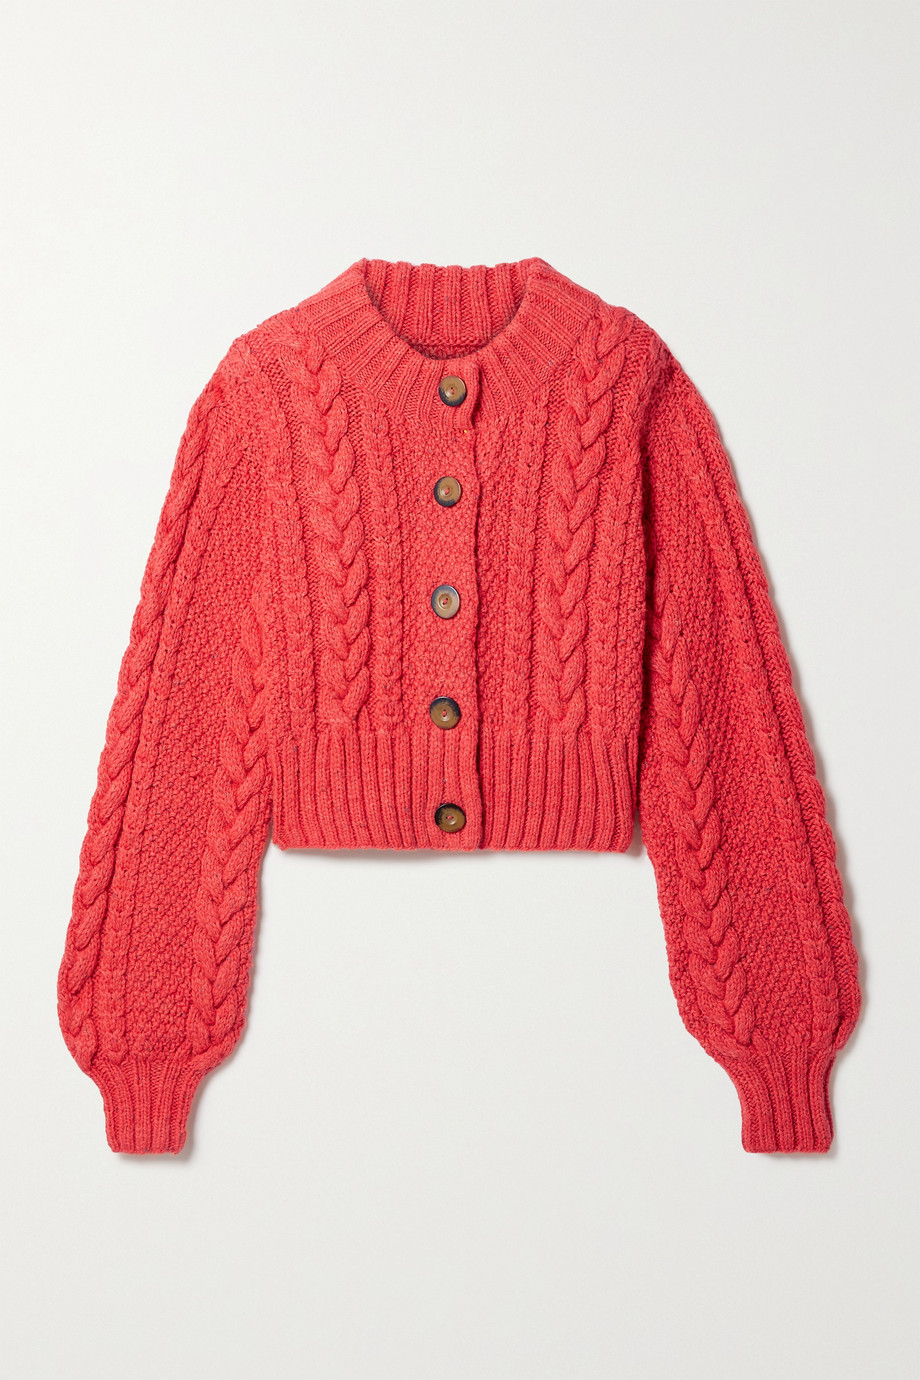 DÔEN Hemione cropped cable-knit alpaca-blend cardigan